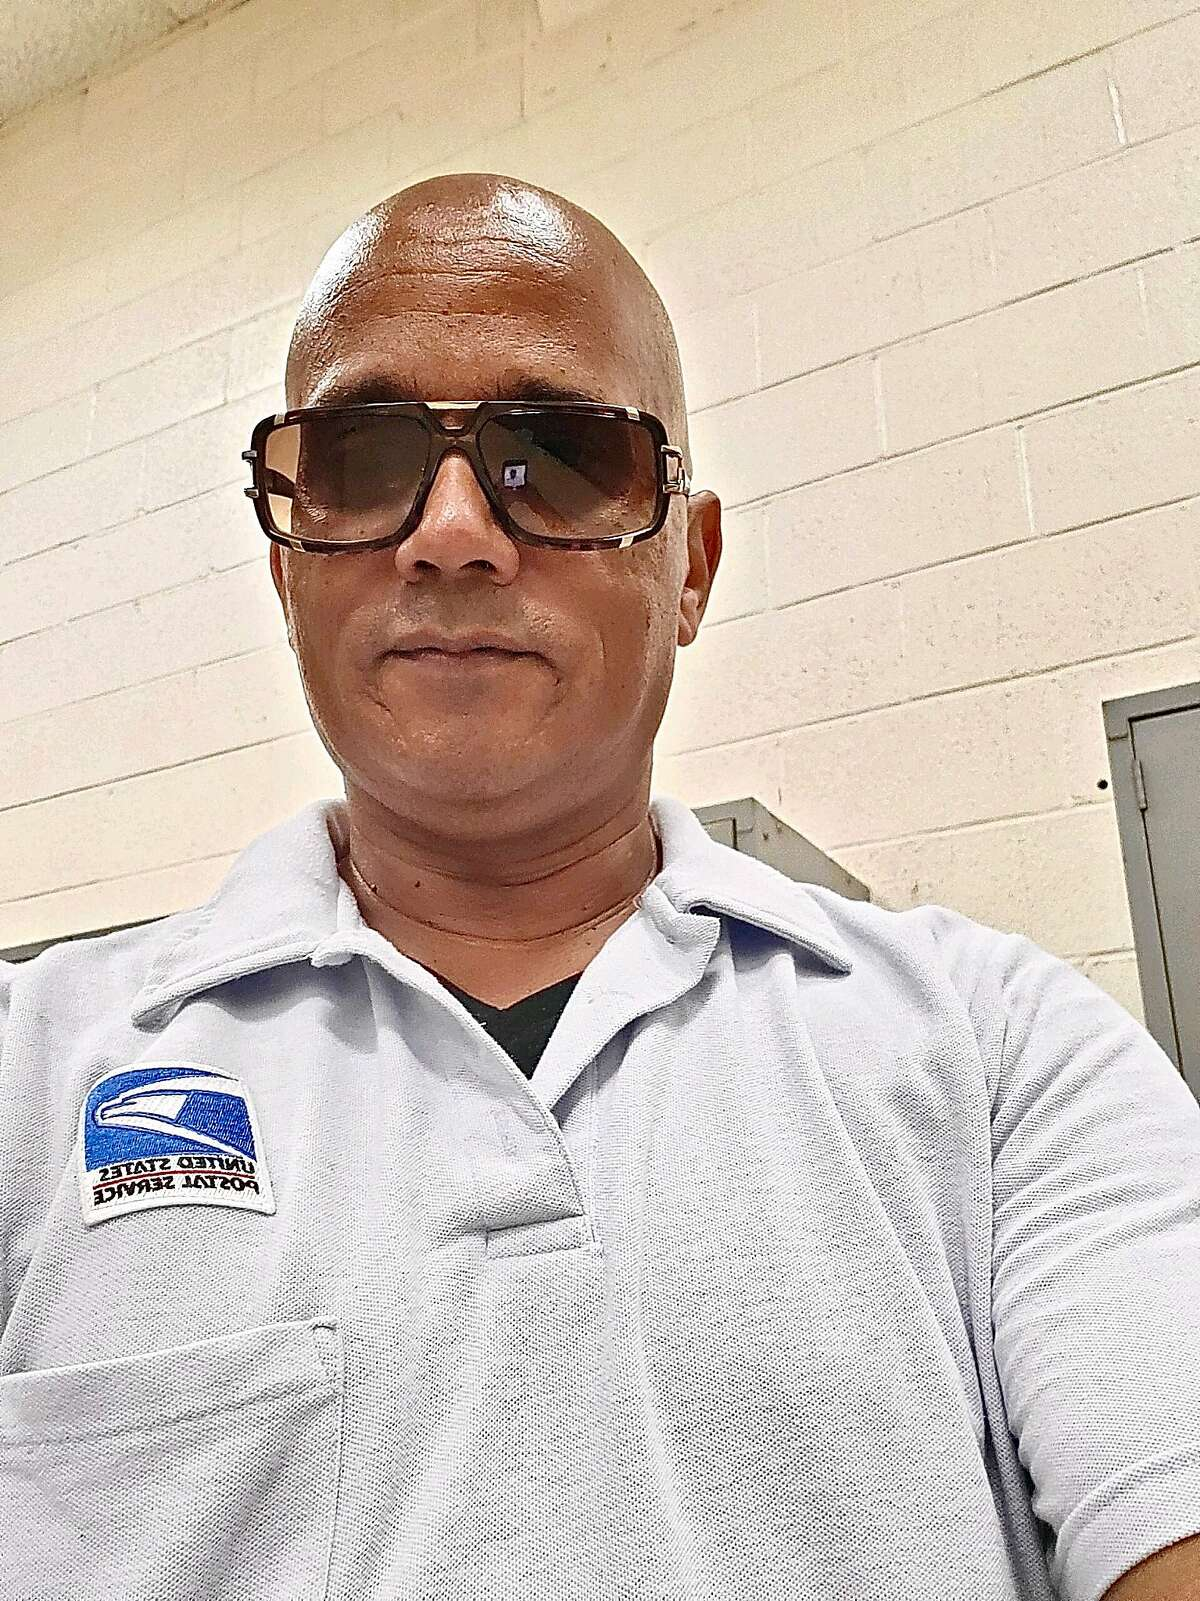 Karl Bracy, a Black mail carrier said he suffers from psychological trauma after being wrongly detained as a carjacking suspect by San Rafael police. He filed a lawsuit Thursday against the city and the officers involved.